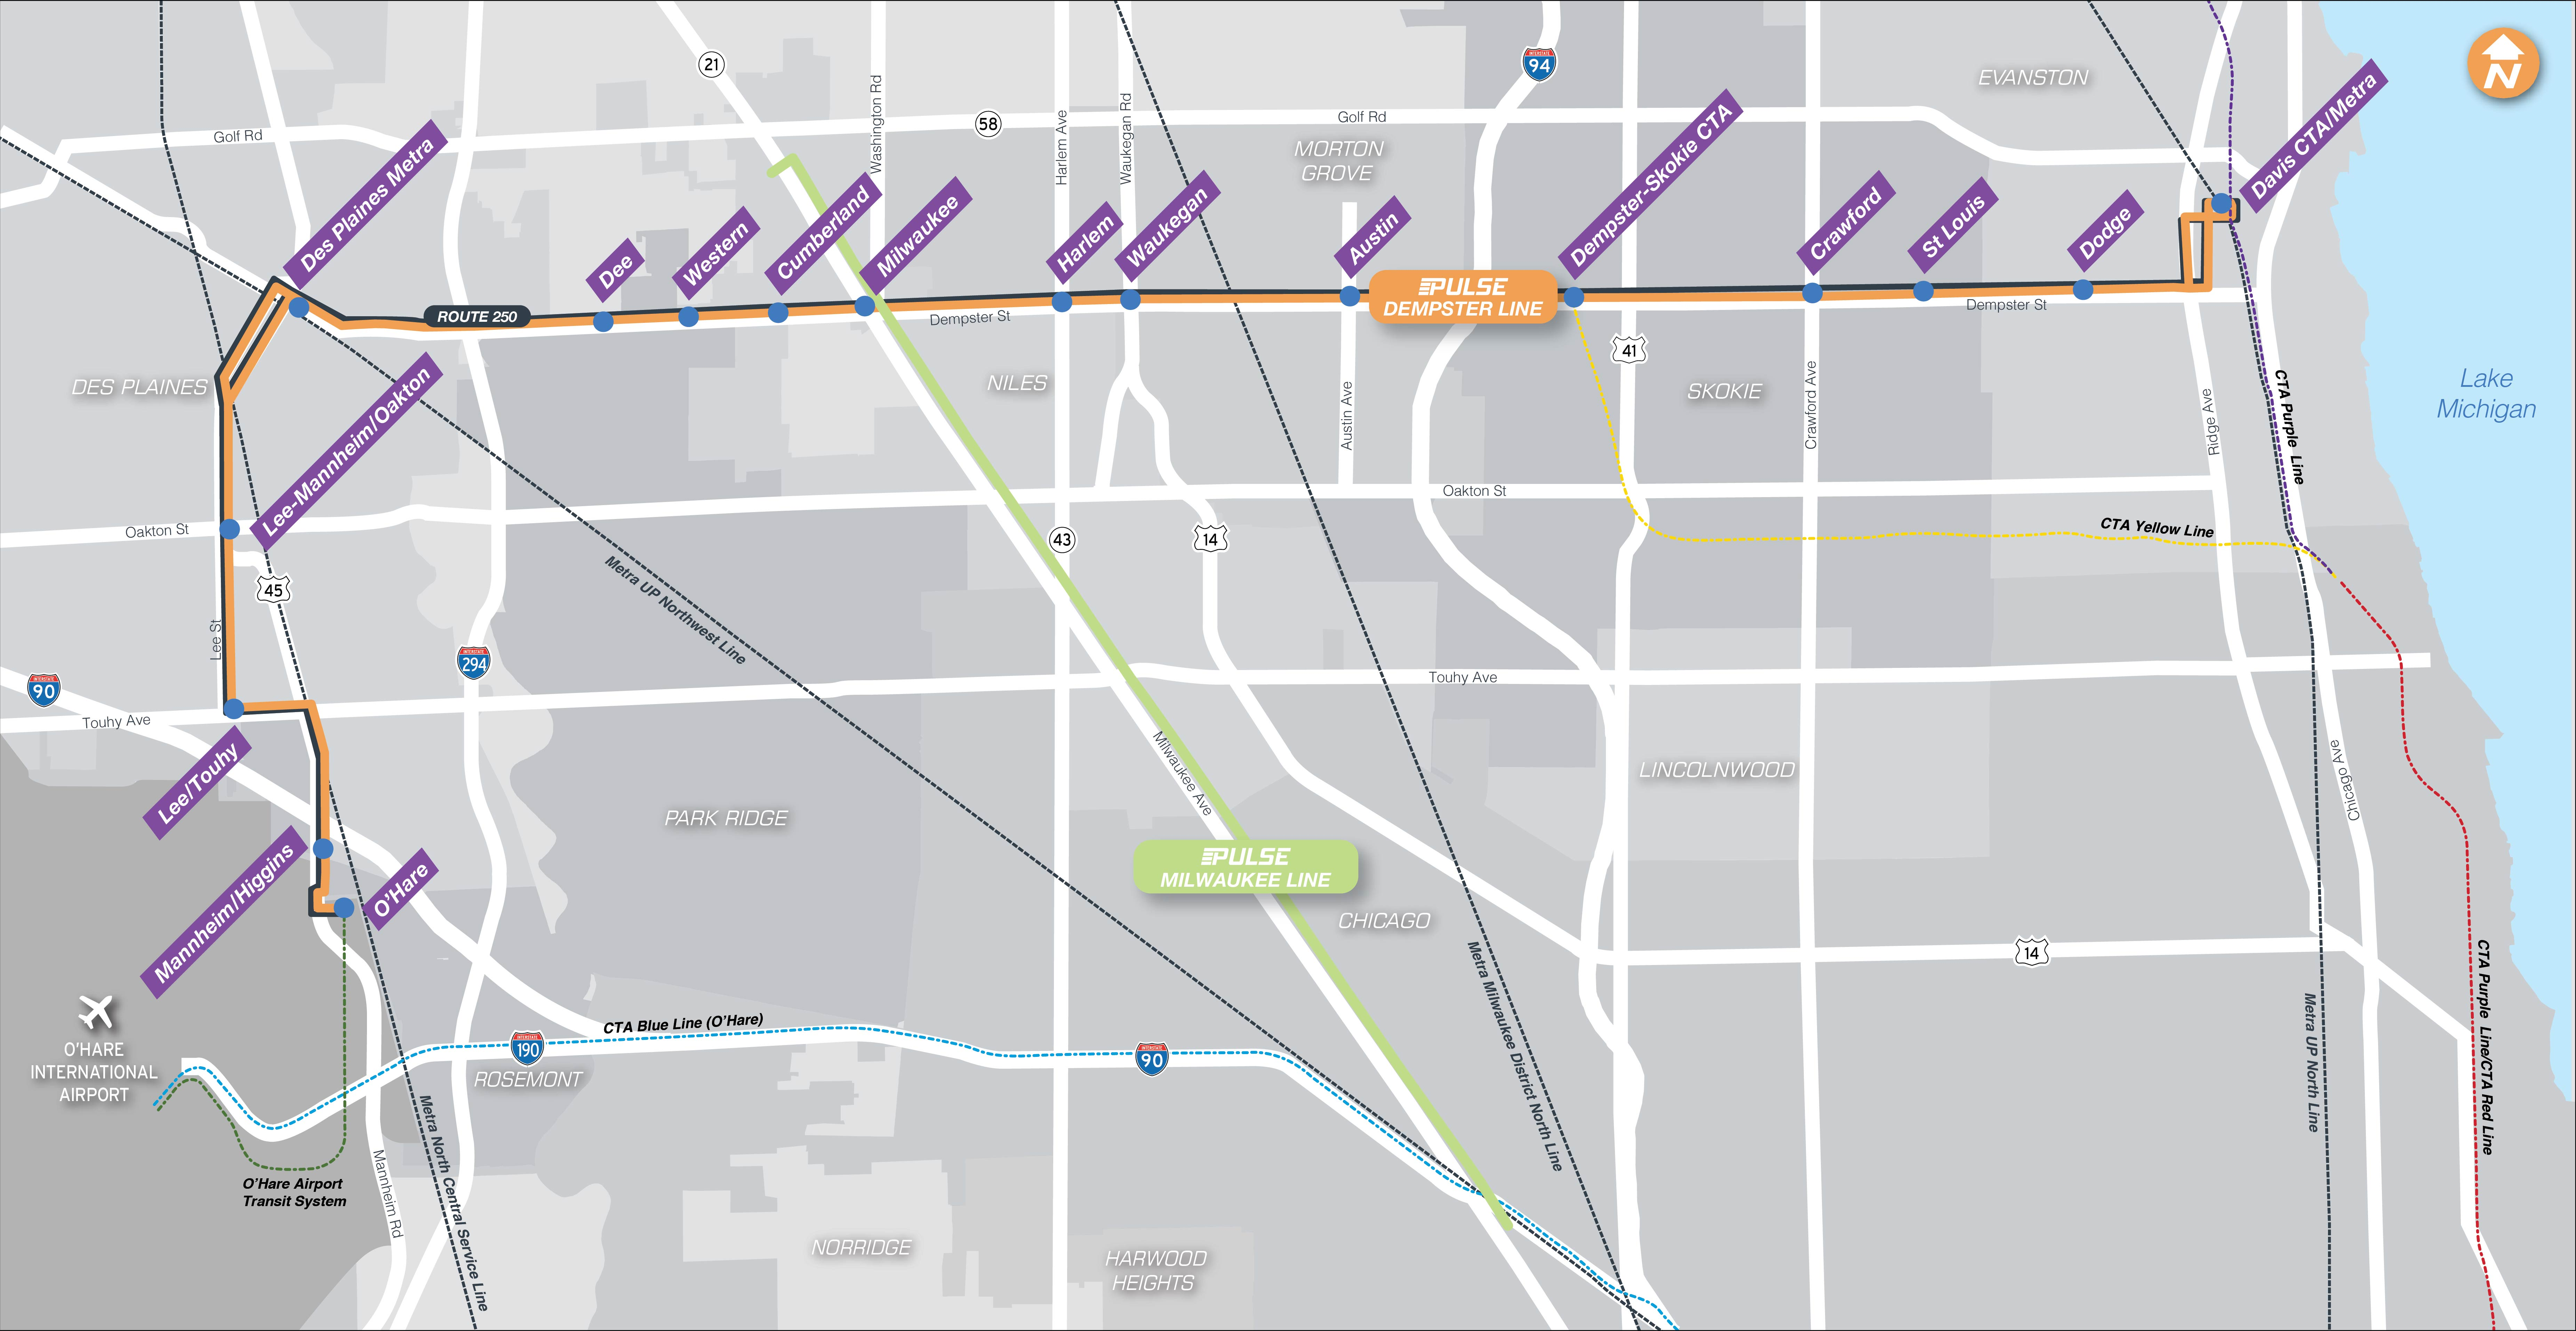 Image of the Pulse Dempster Line Corridor Map